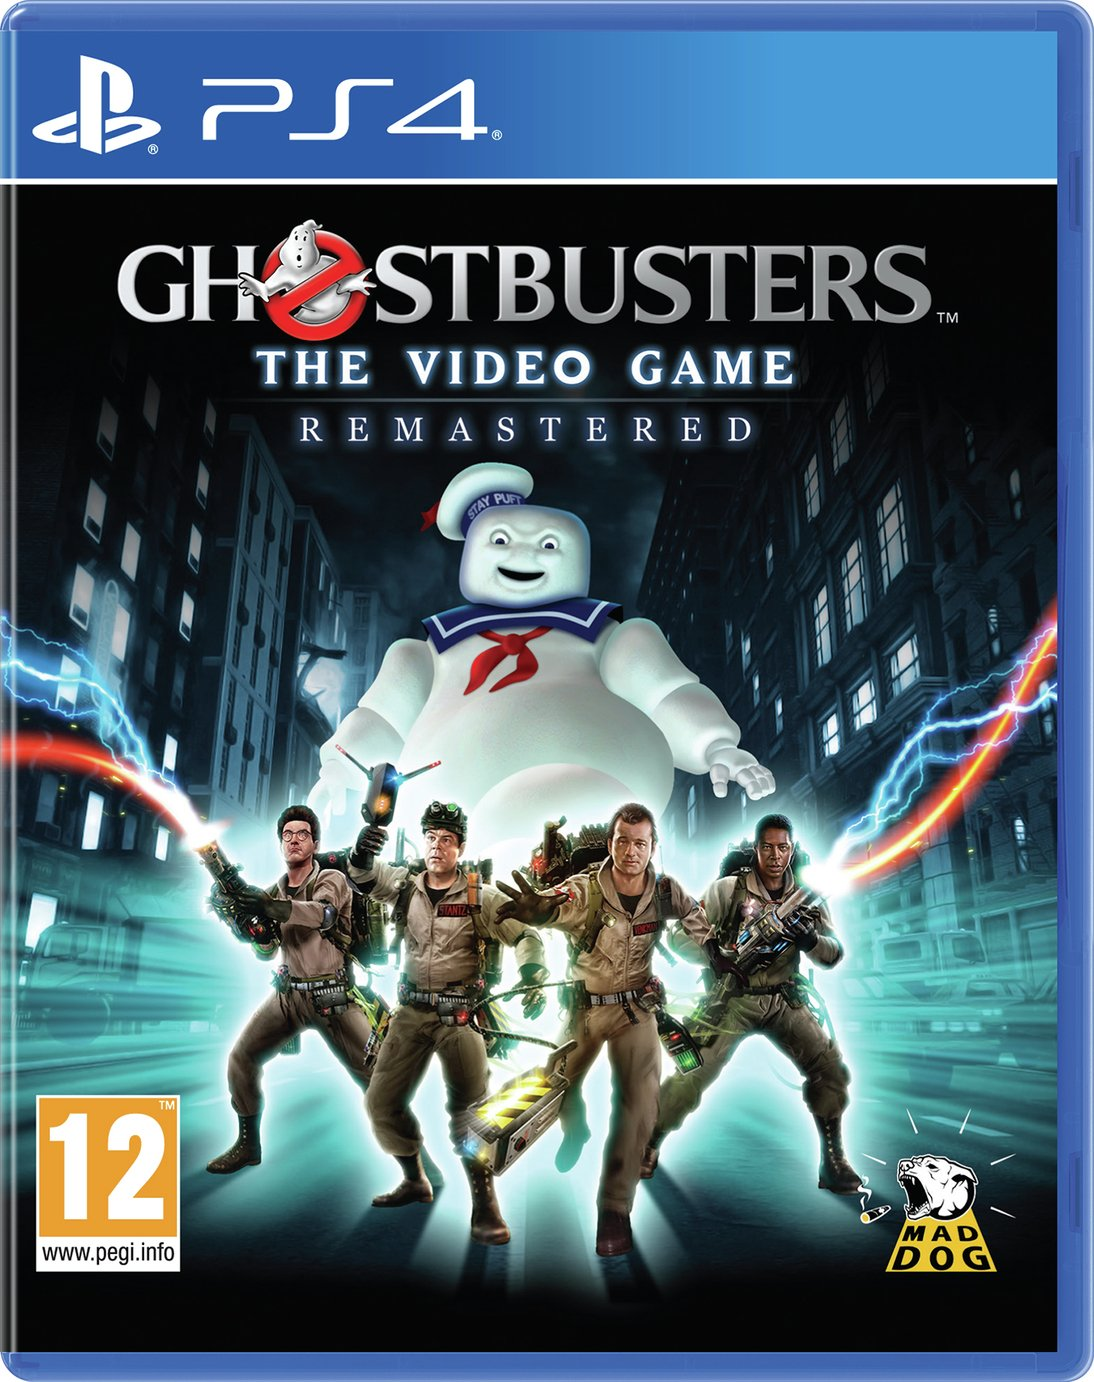 Ghostbusters: The Video Game Remastered PS4 Pre-Order